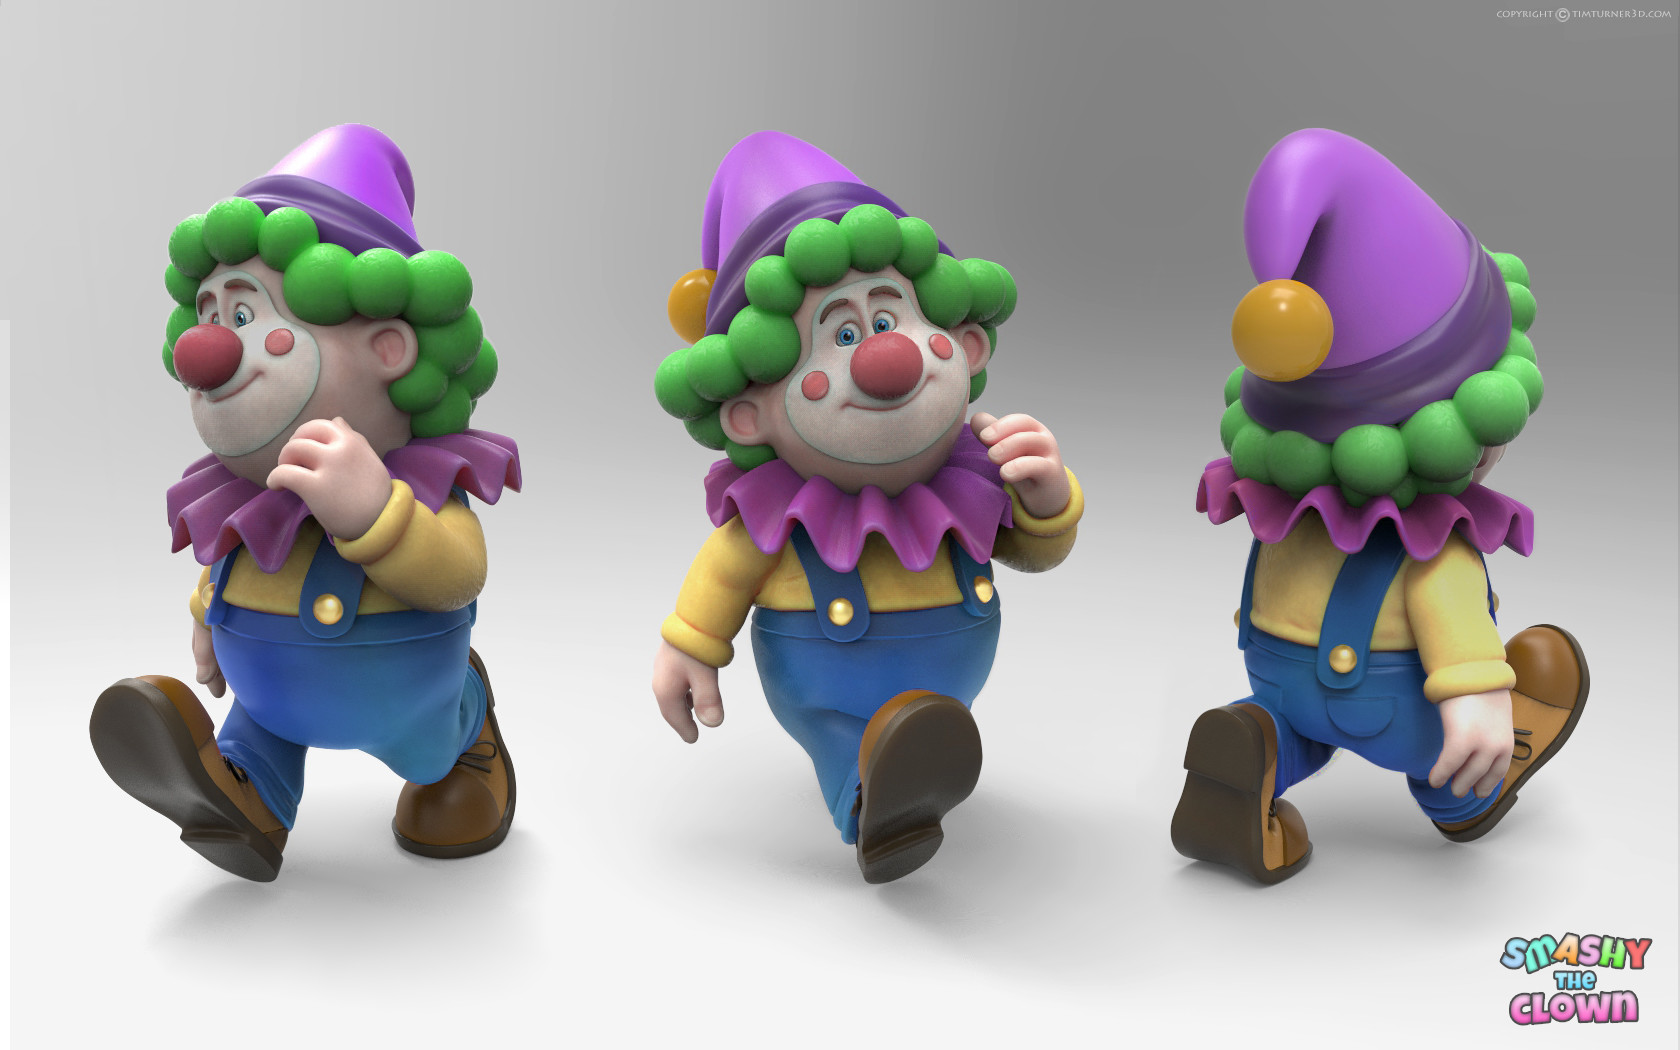 Tim turner 3d smashy clown render